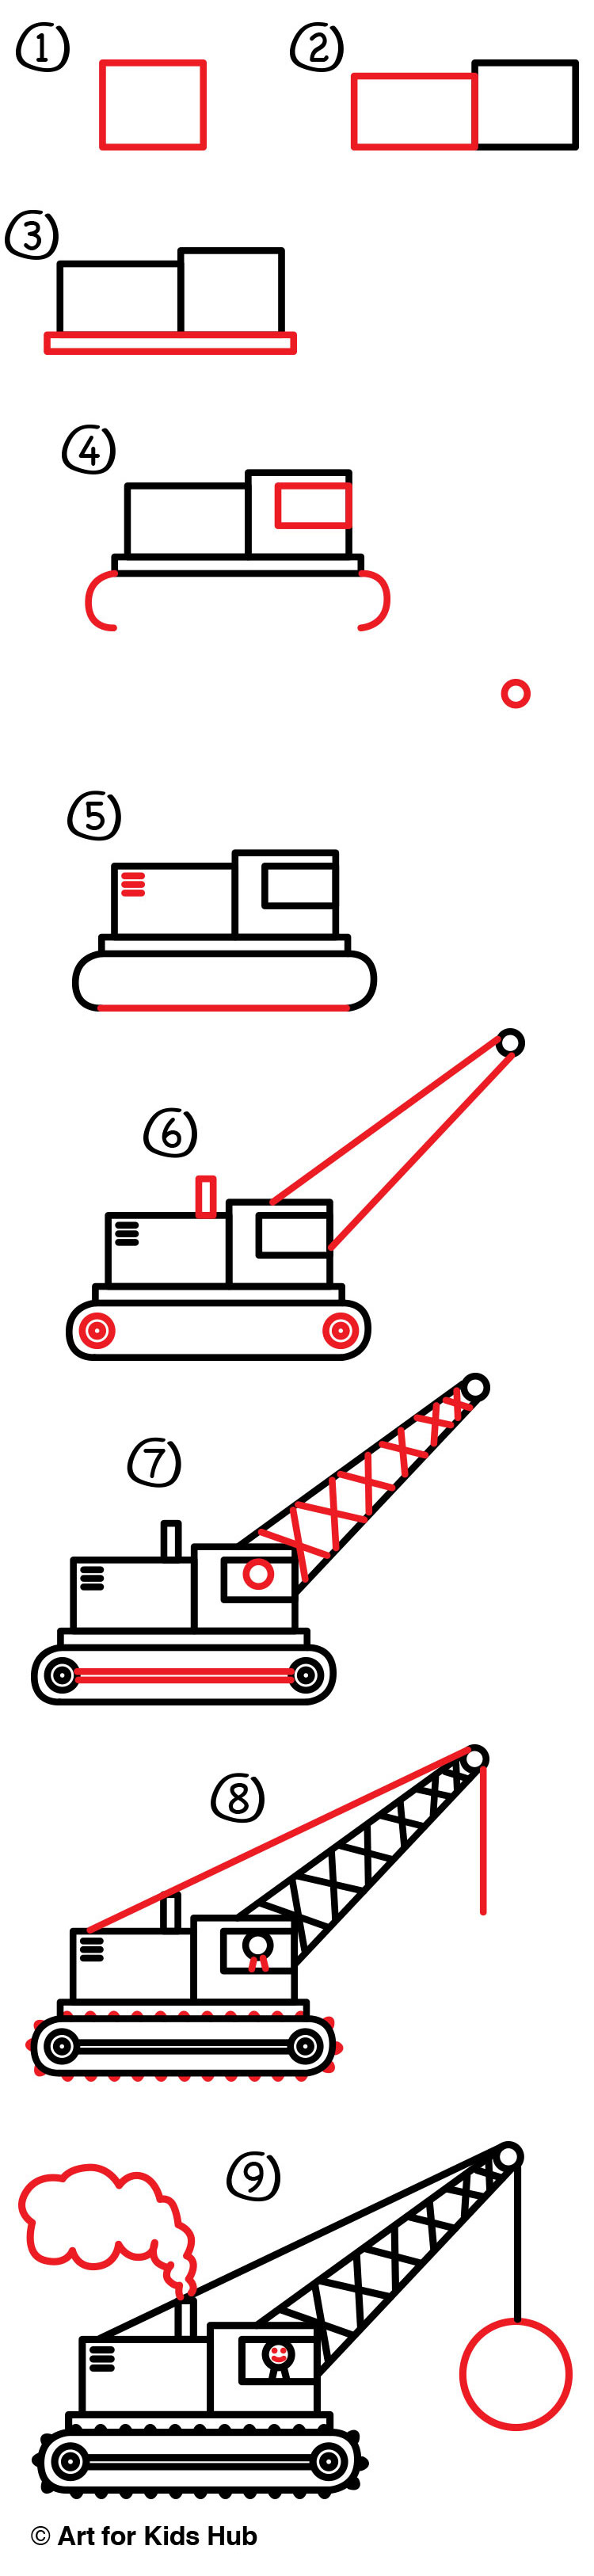 How to draw a wrecking ball crane art for kids hub for How to draw a crane step by step